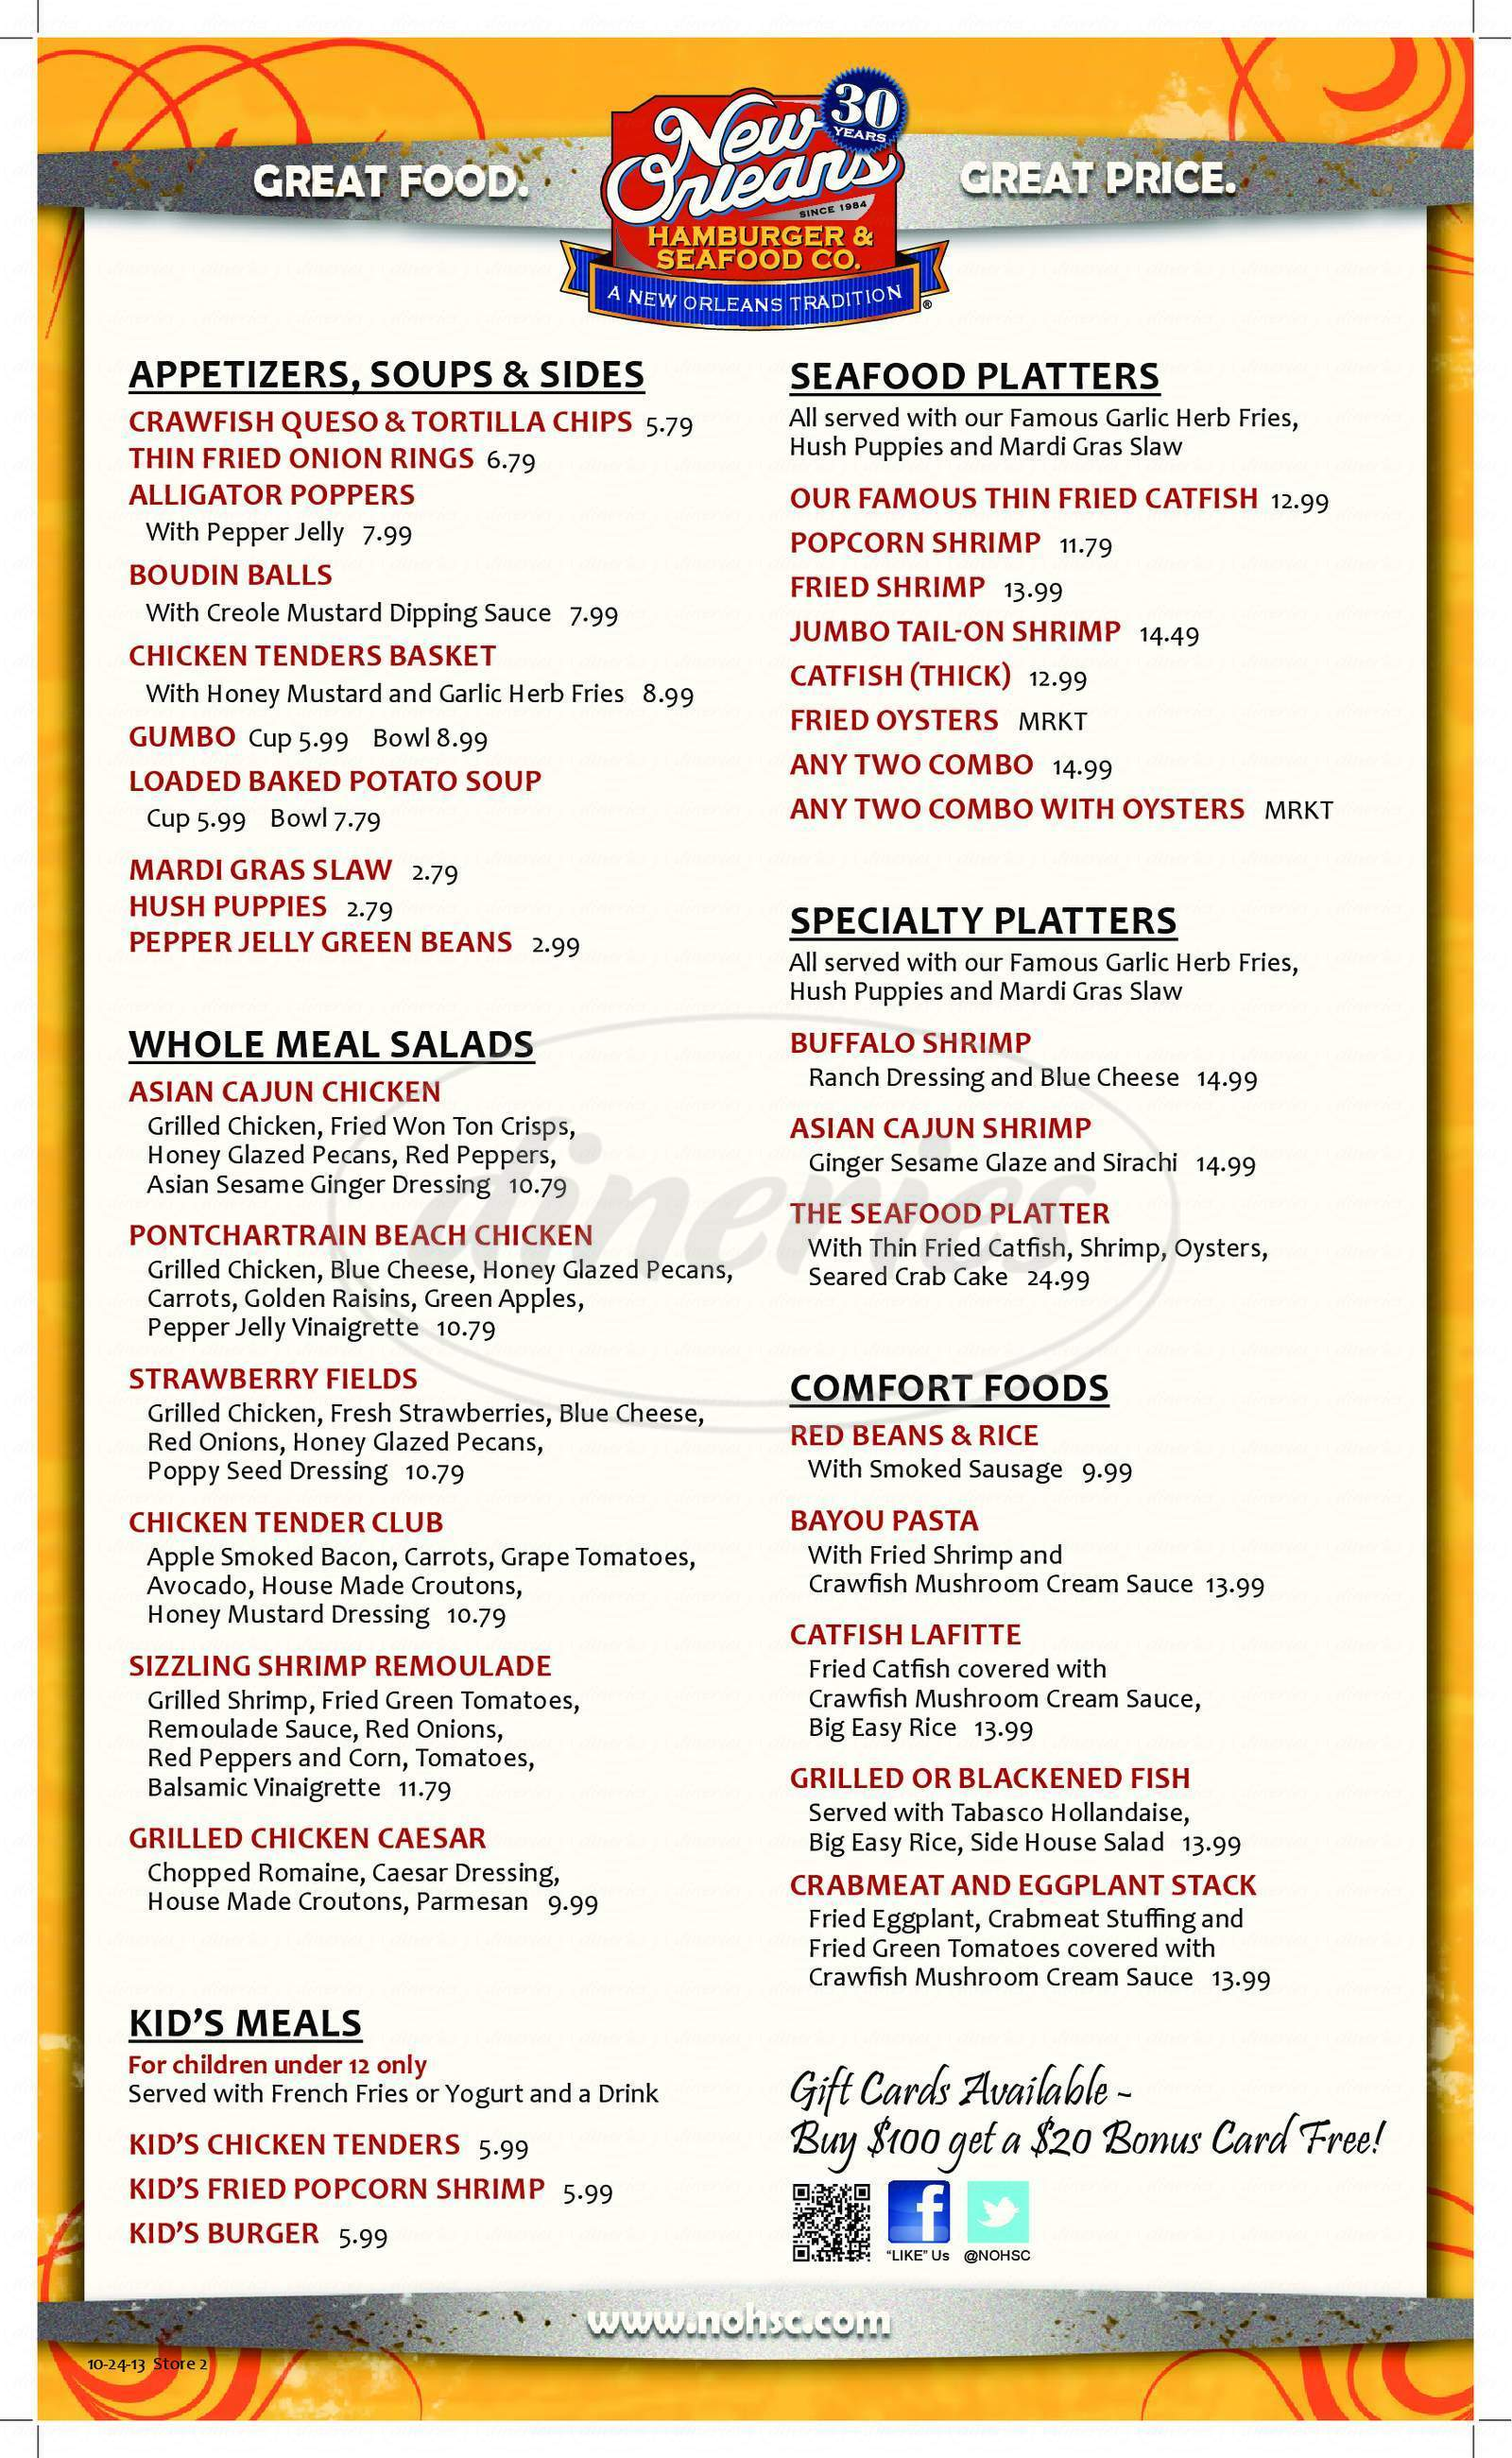 menu for New Orleans Hamburger & Seafood Co